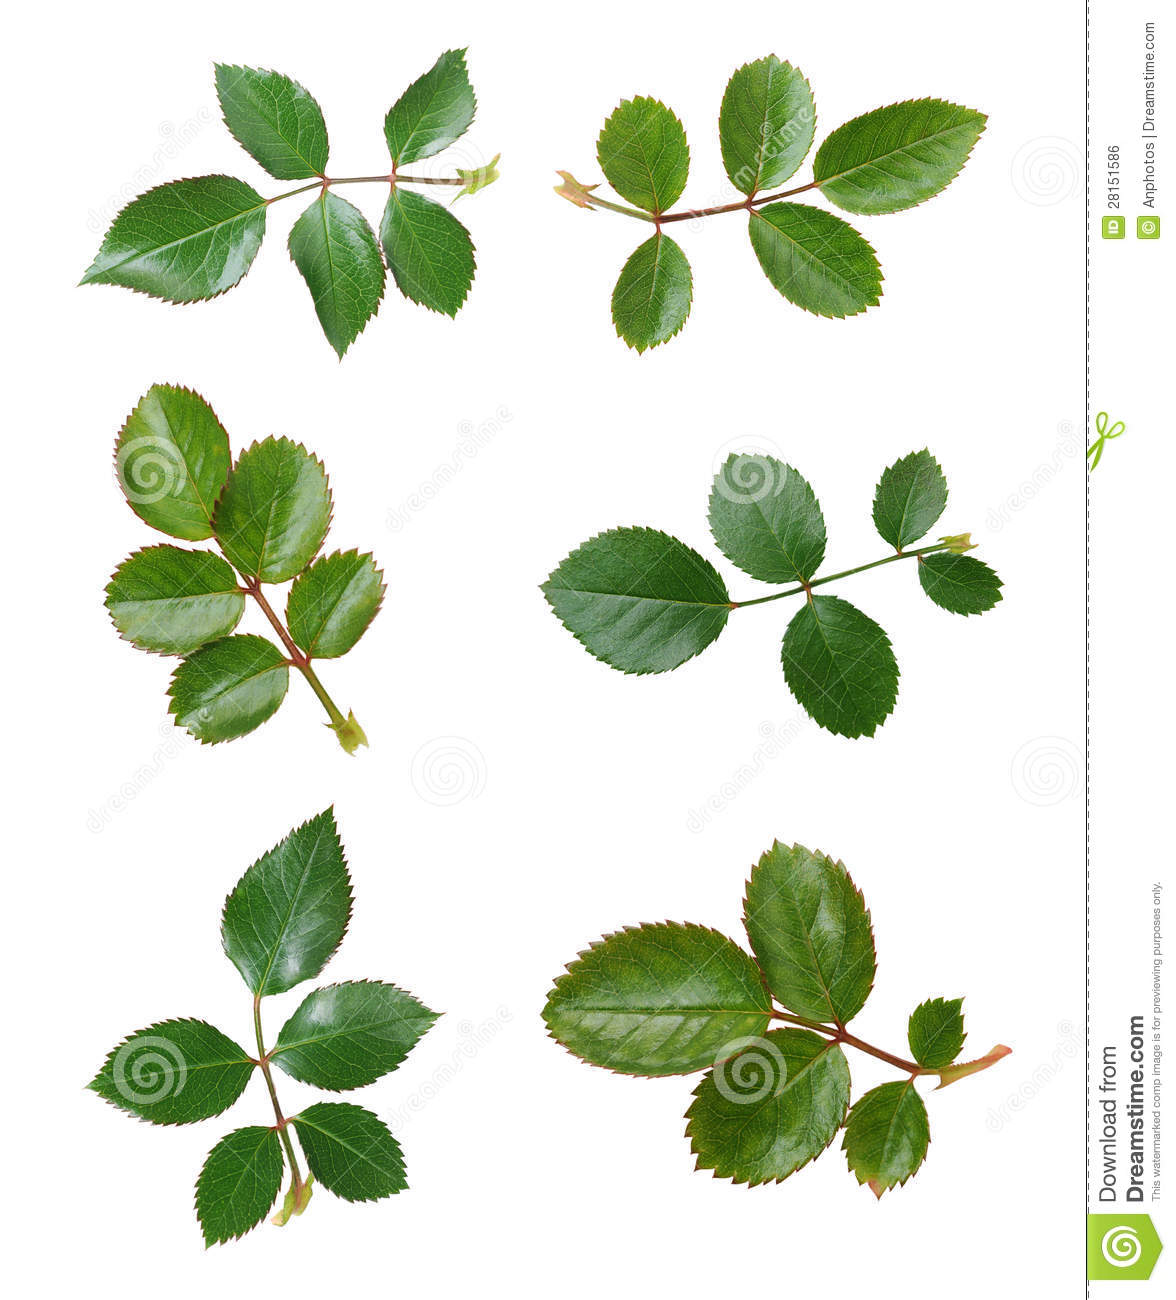 Six Views Of Rose Leaves Royalty Free Stock Image - Image: 28151586